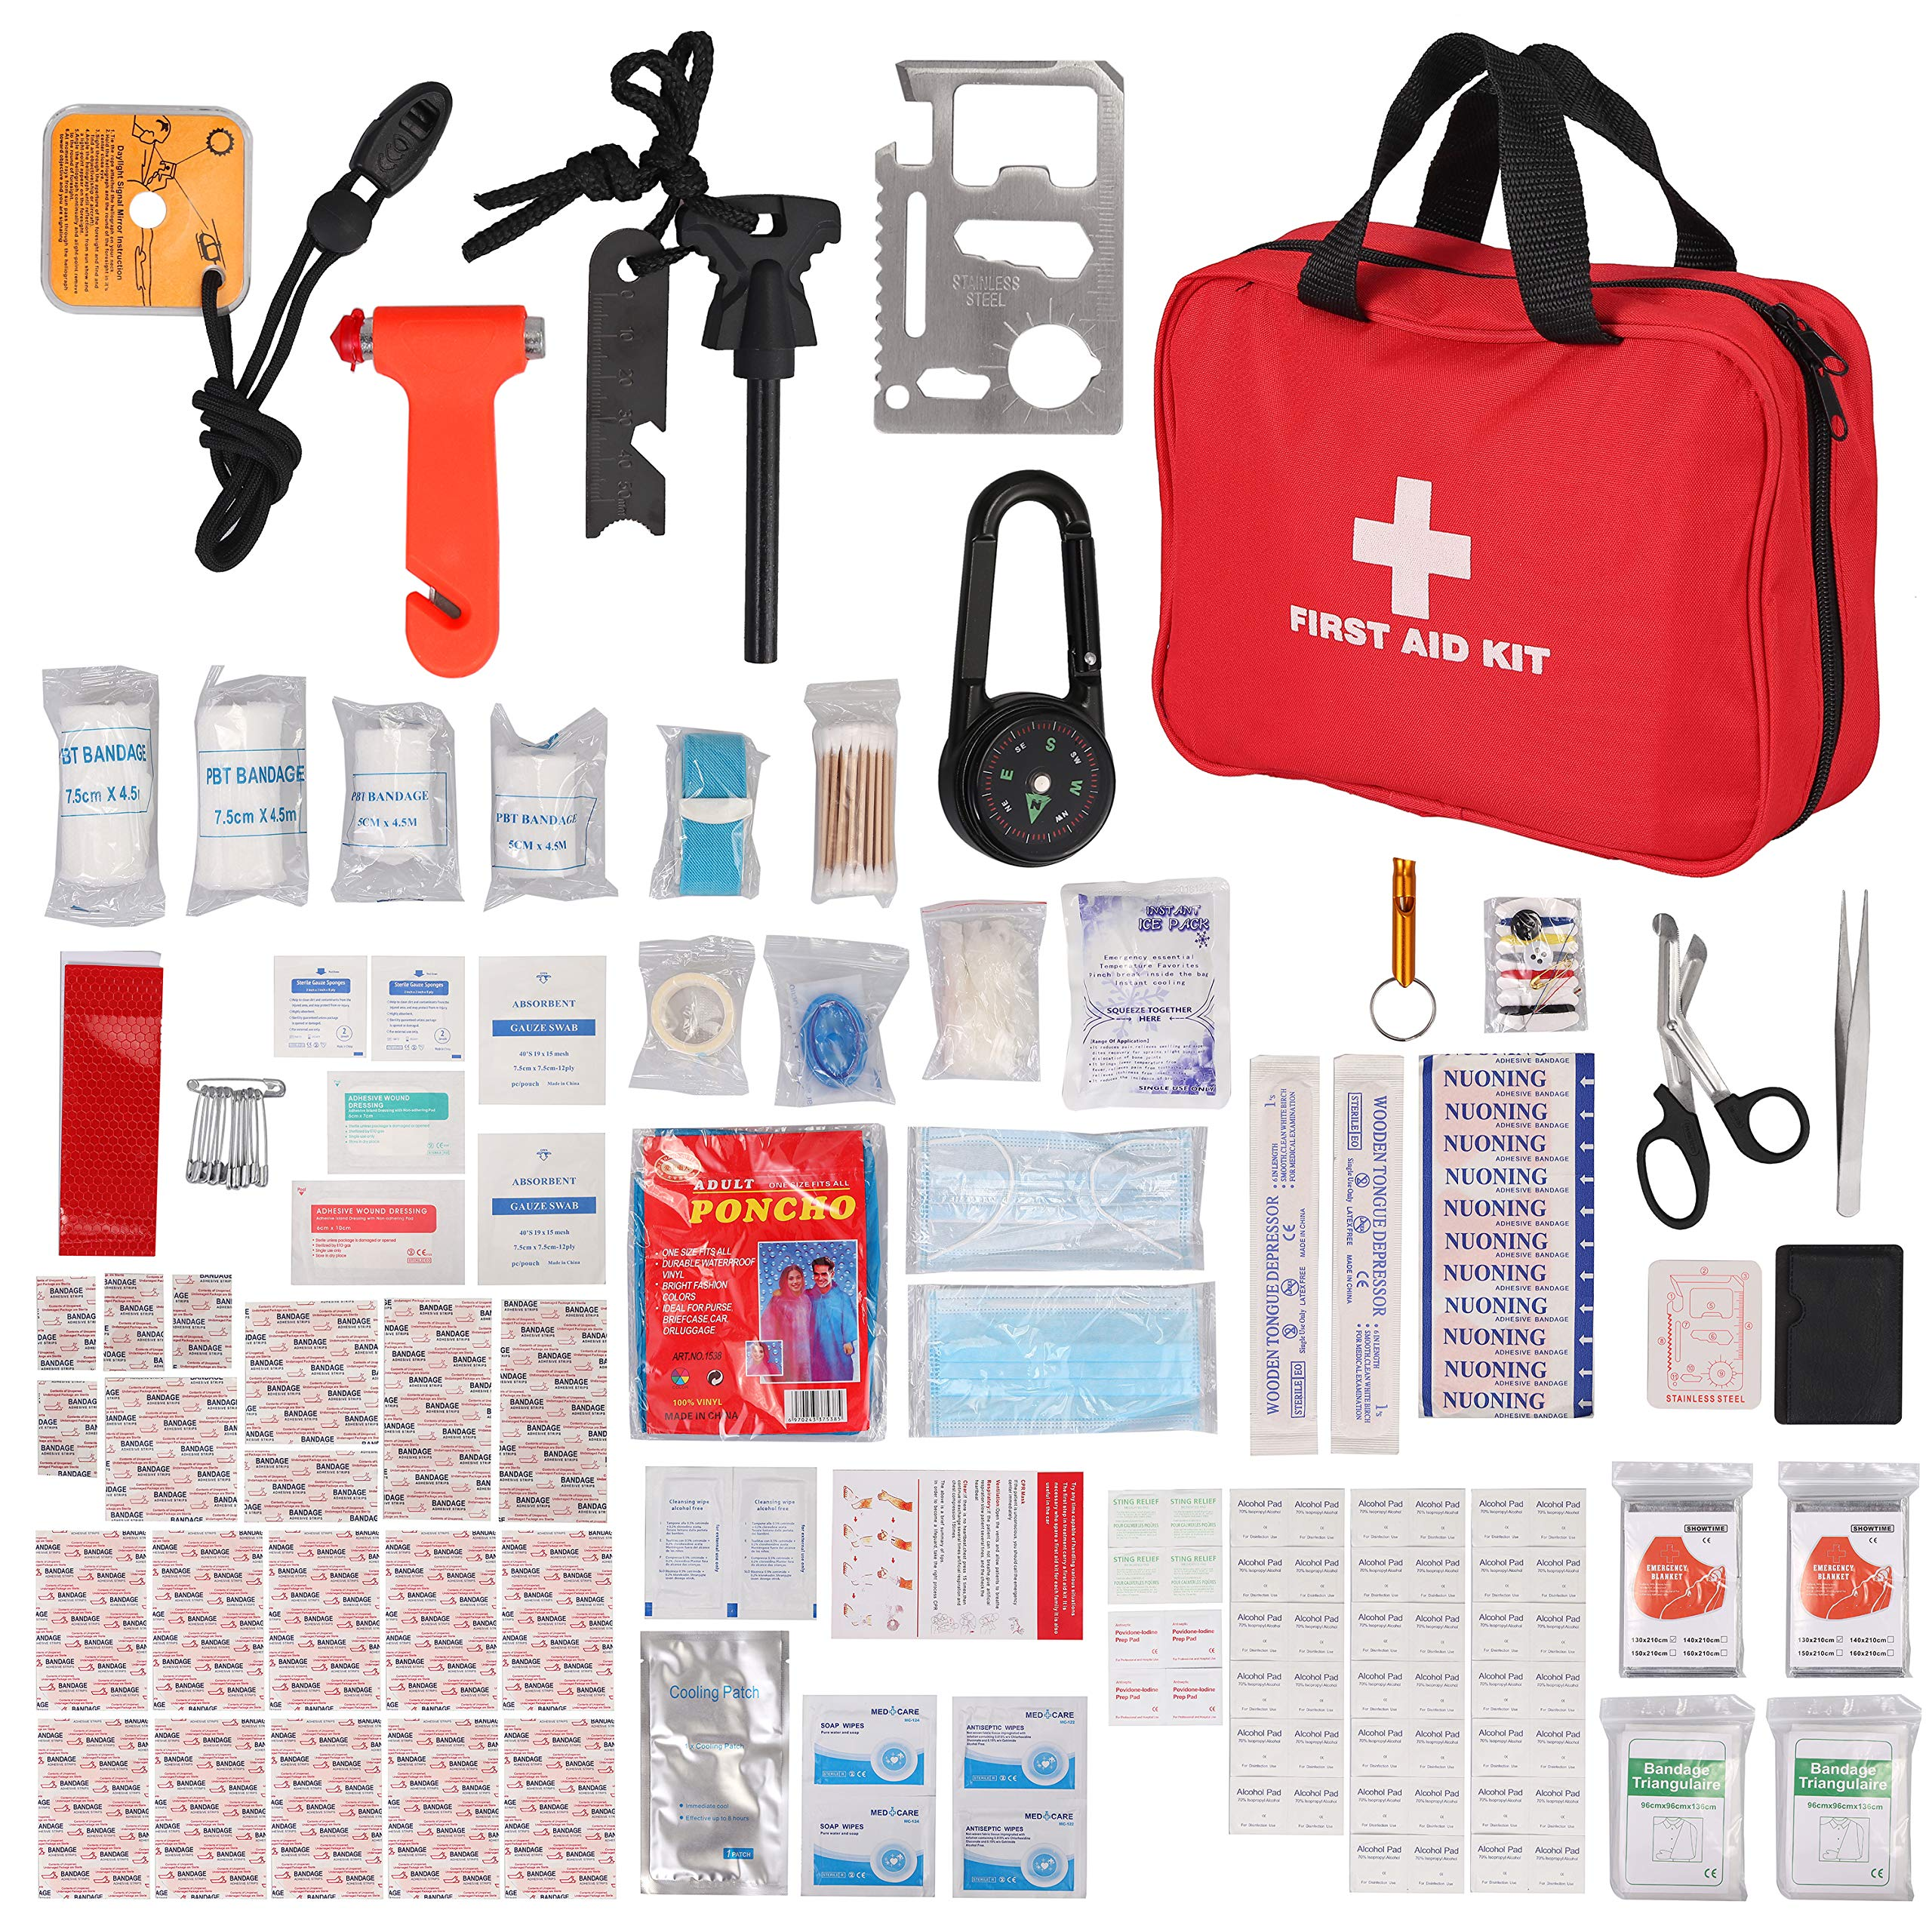 Justech First Aid Kit Upgraded 242PCs Travel Medical Kit Emergency Survival Kit with Thermal Blanket Carabiner Bracelet Compass and More for Home Camping Hiking Travel or Adventures